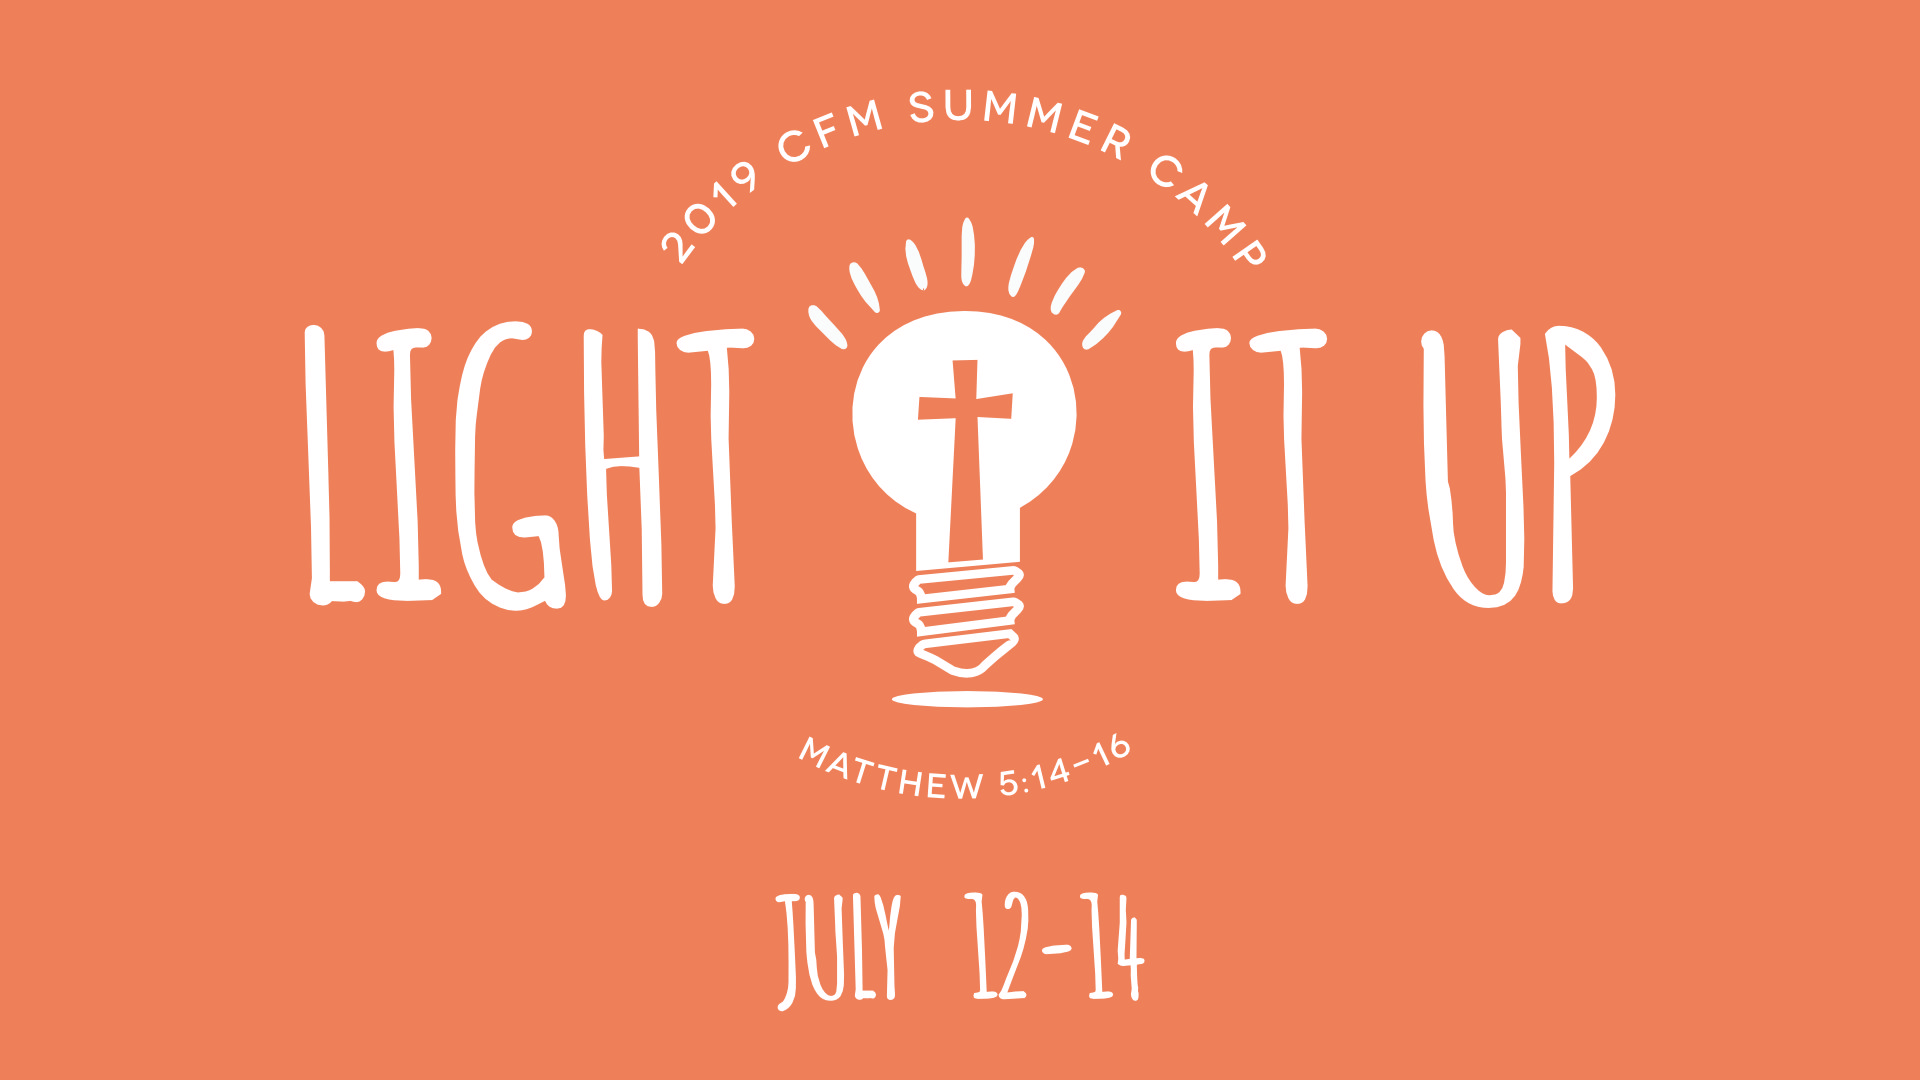 """Our 2019 theme is """"Light It Up"""" based on Matthew 5:14-16"""